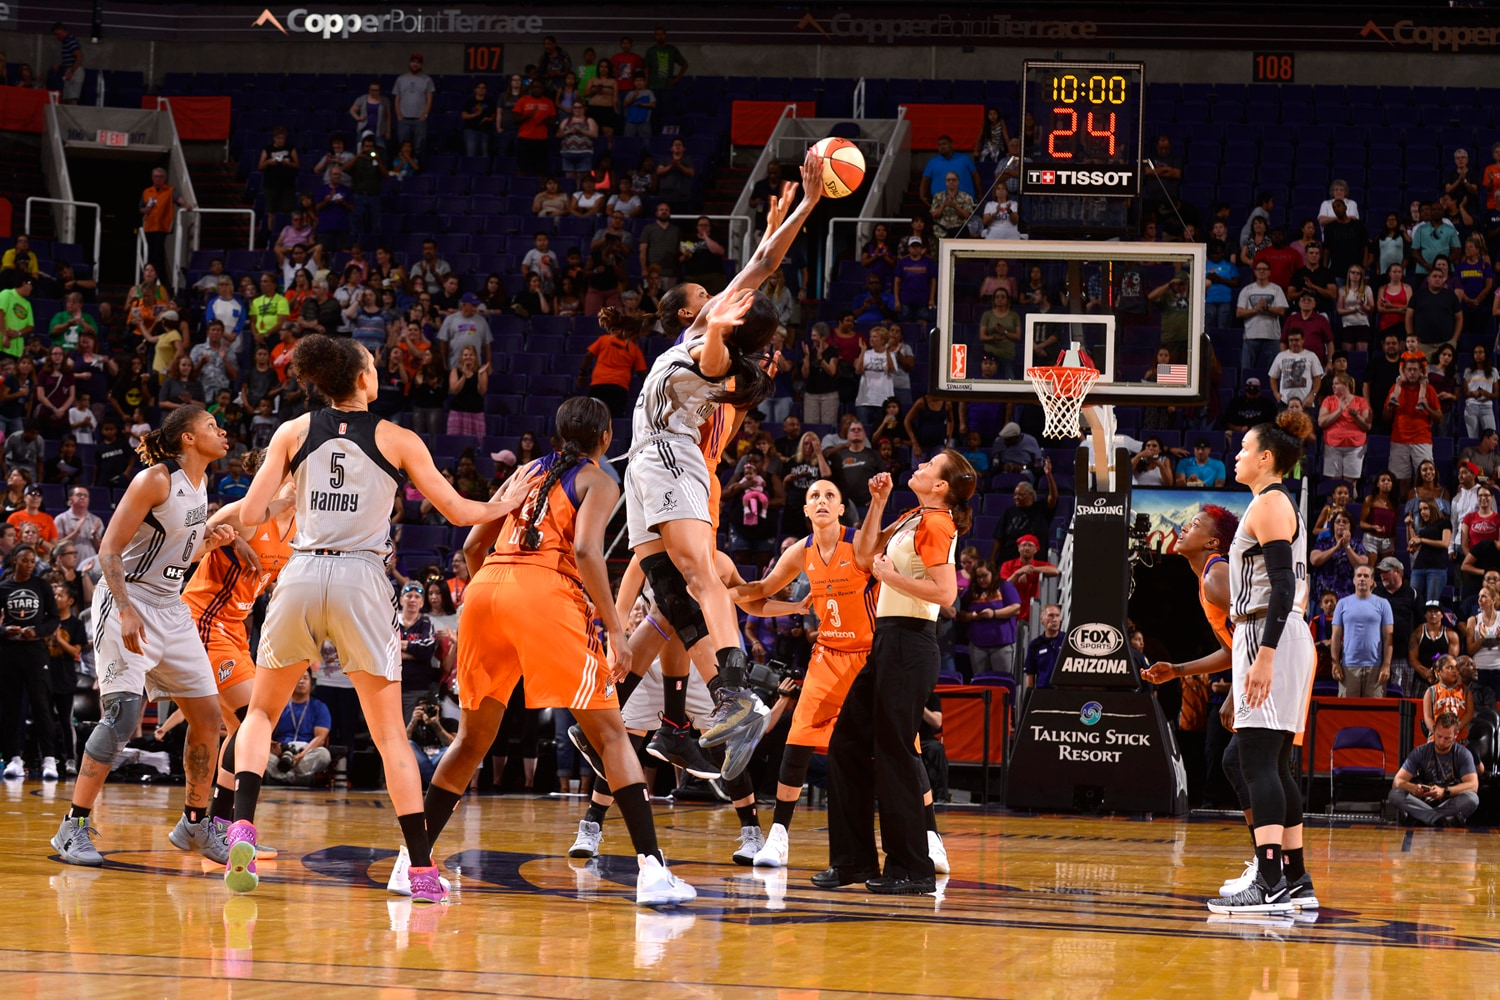 San Antonio Stars v Phoenix Mercury tips off